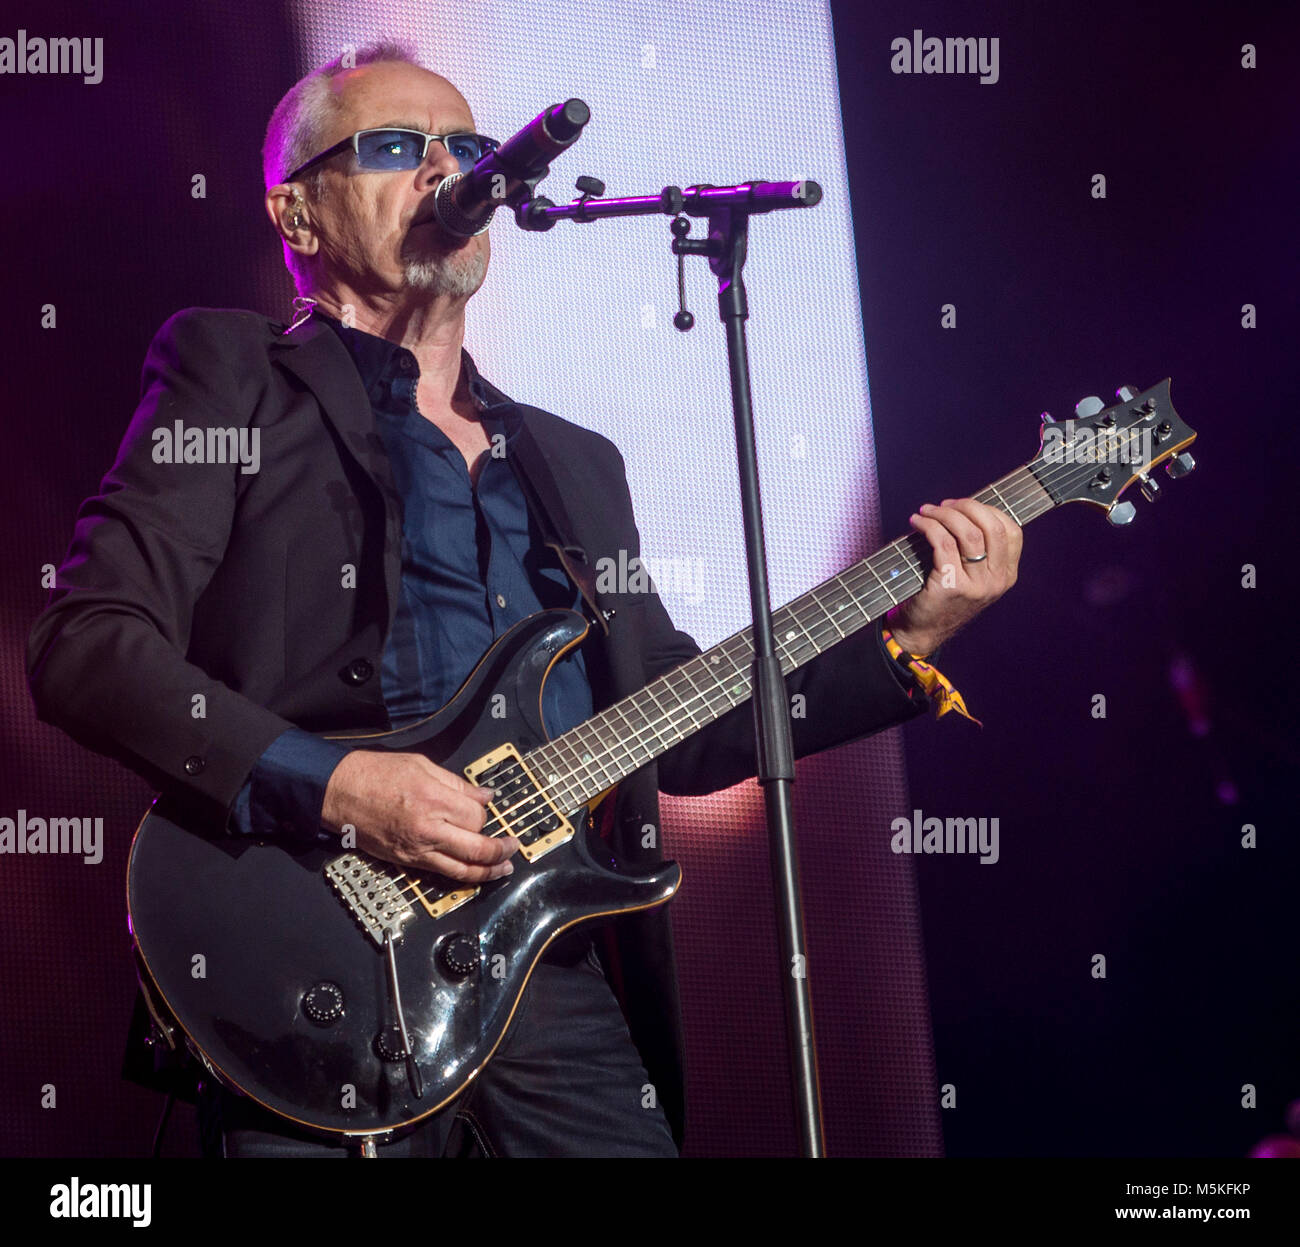 Nik Kershaw plays a Riddle at the Rewind Festival, Scone Palace, Perth, 22 & 23rd July, 2017 on the main stage - Stock Image